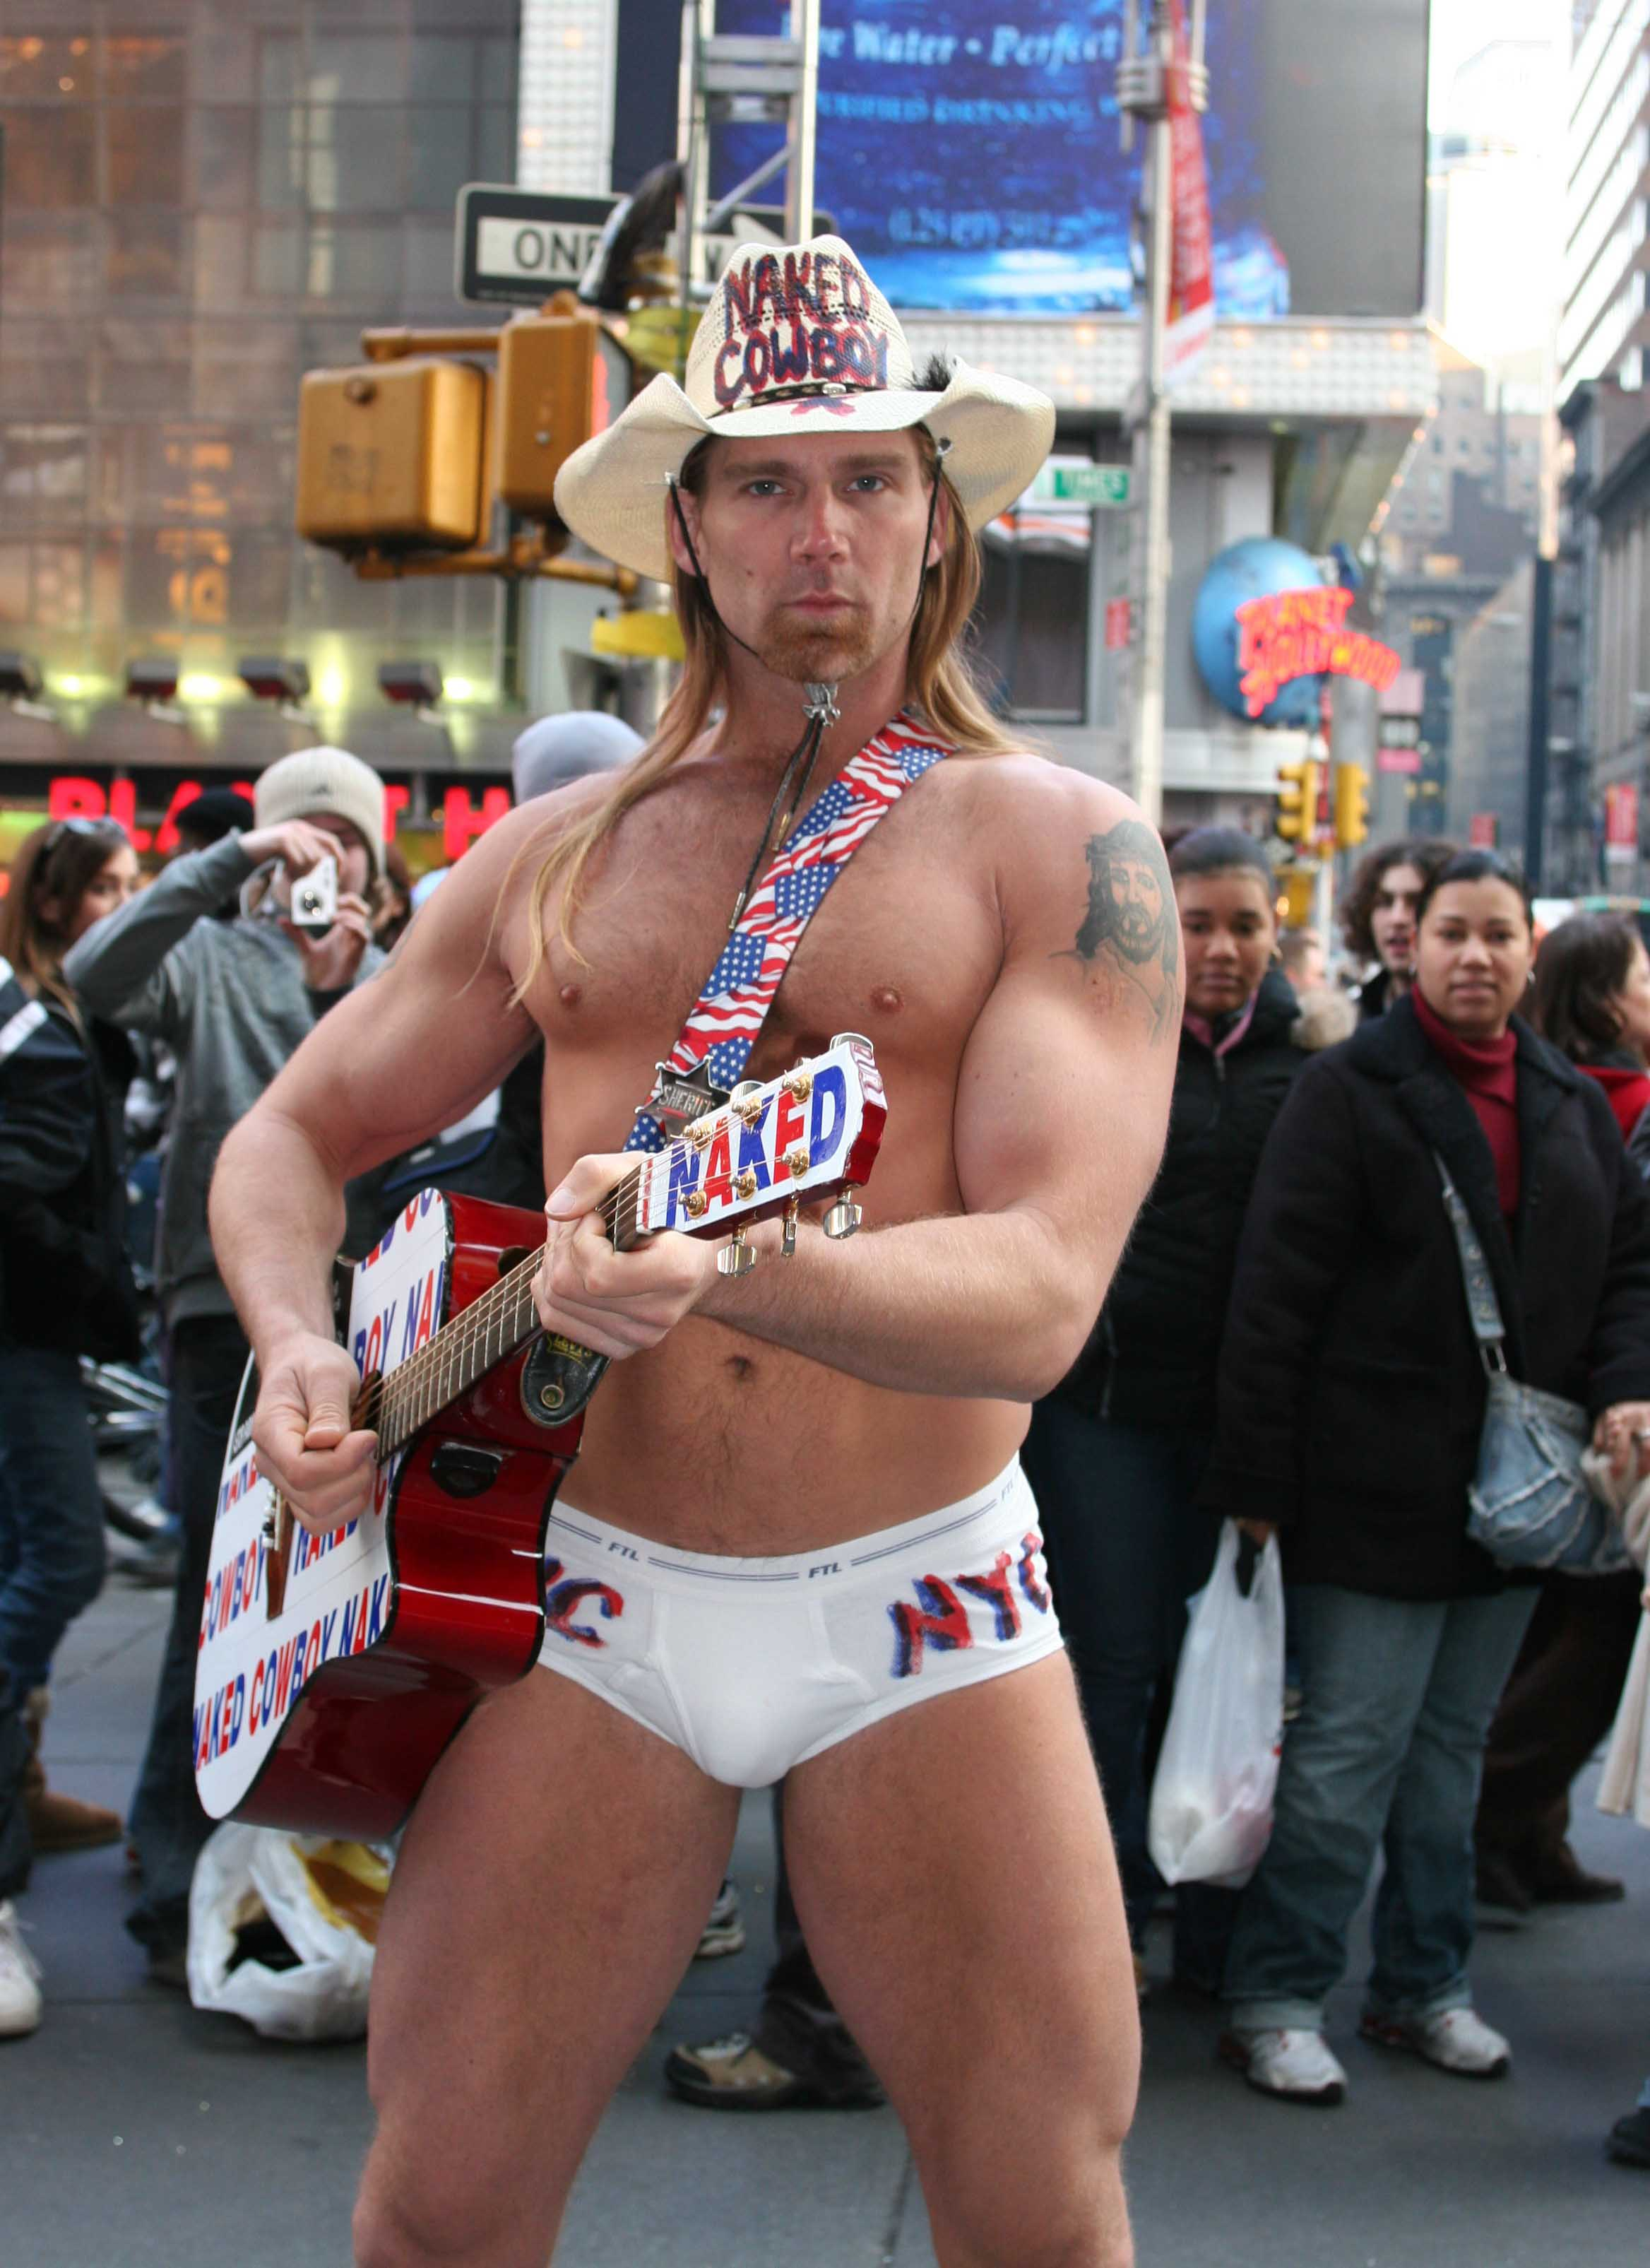 The naked cowboy new york photo 85